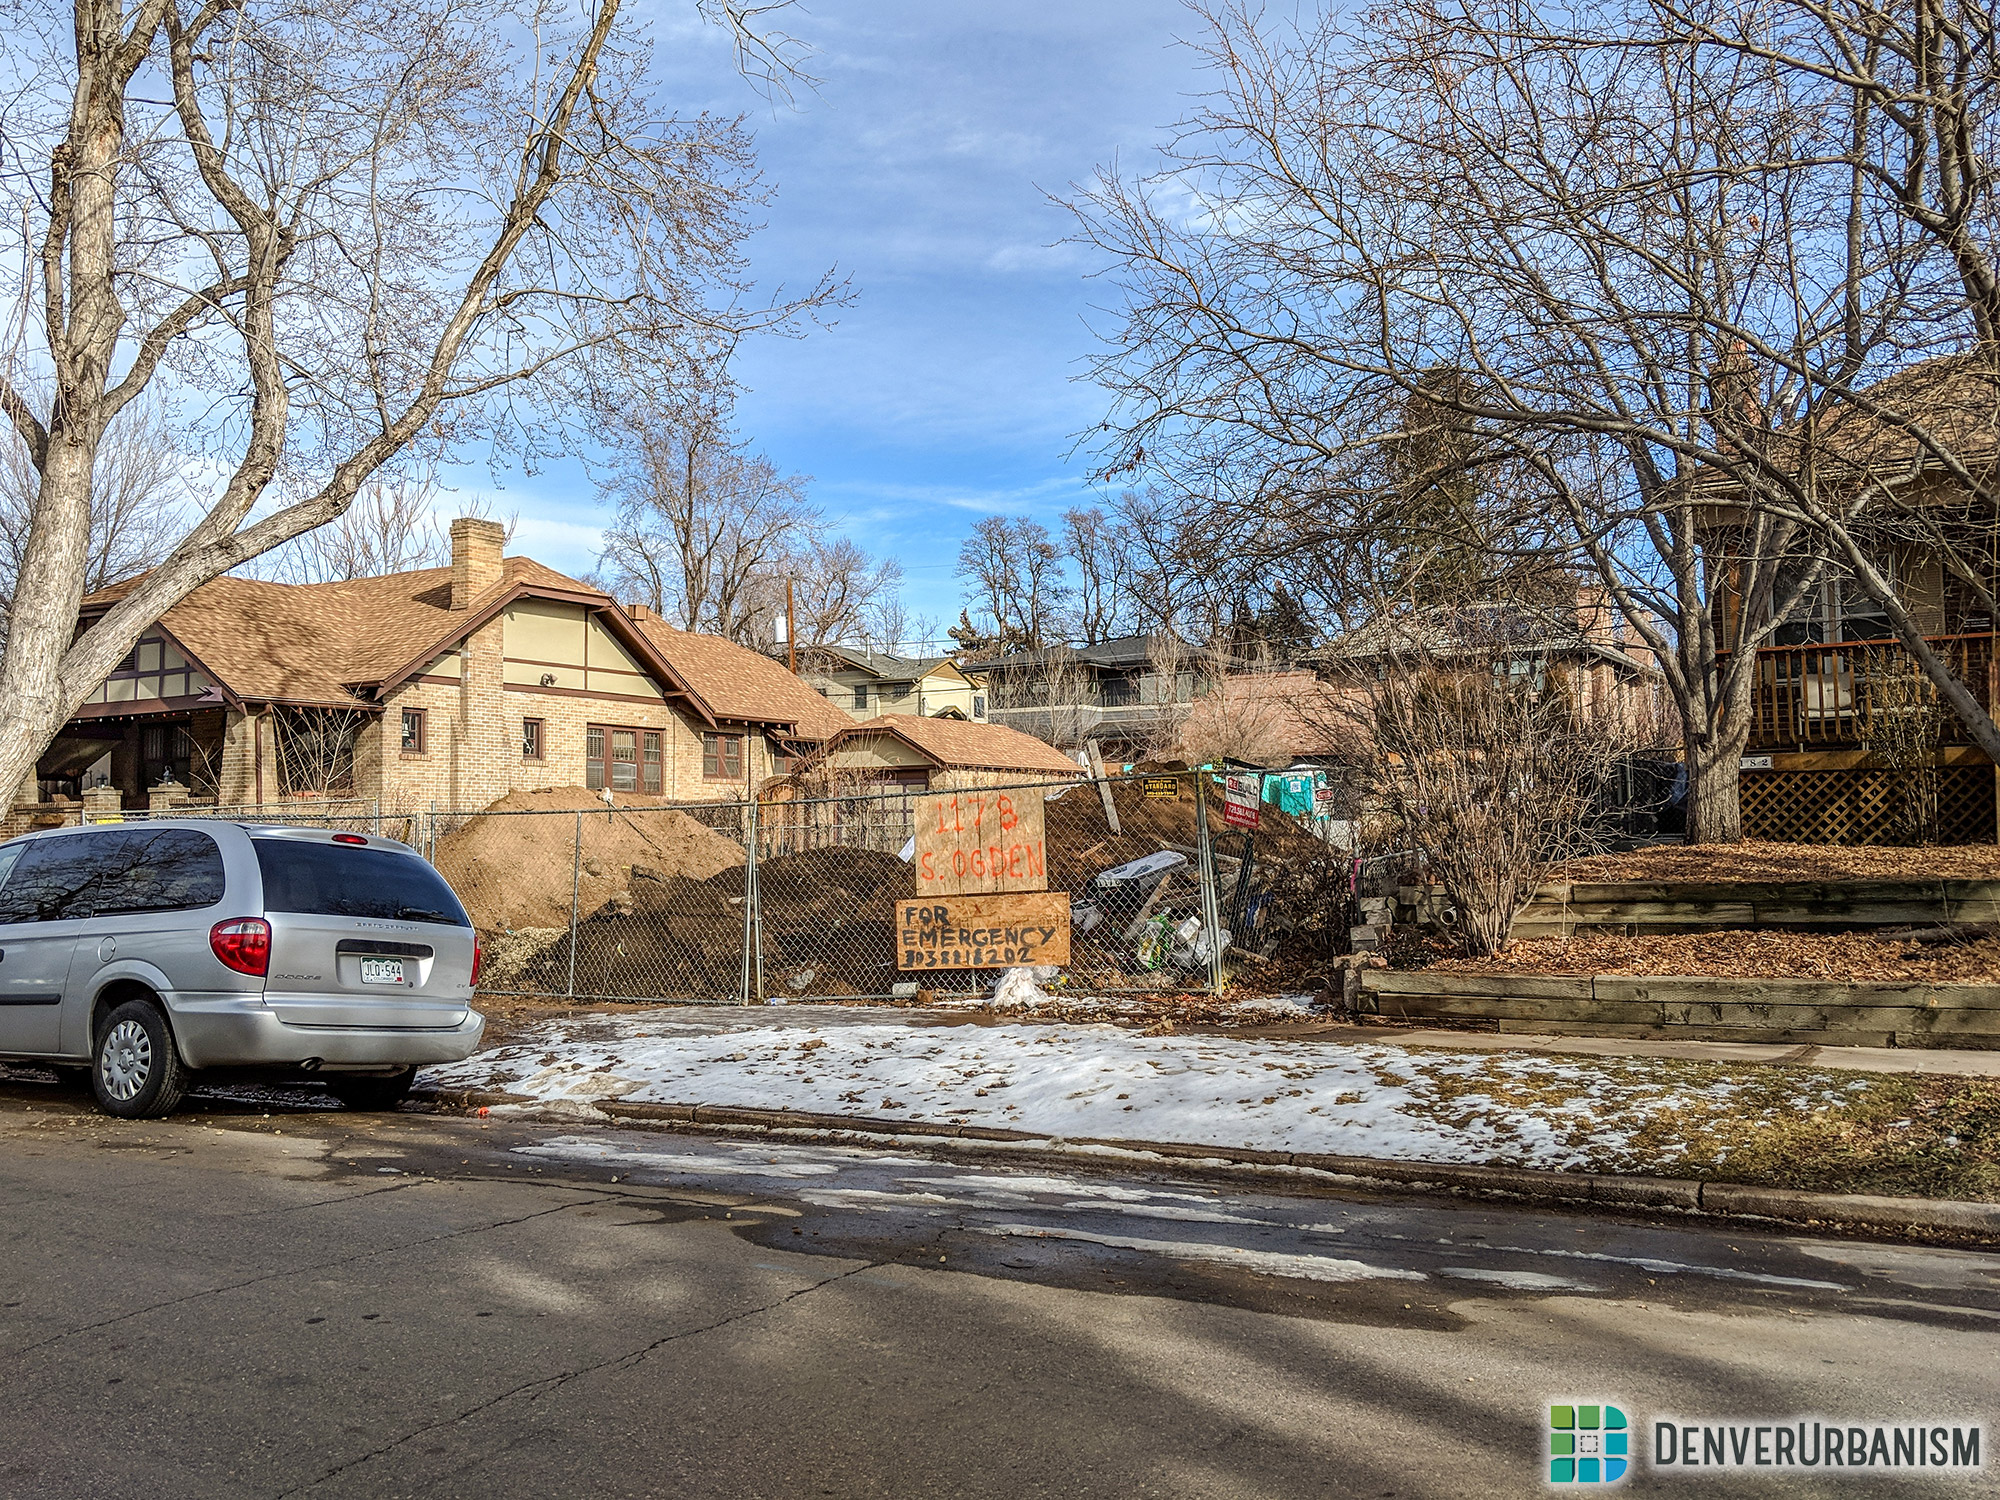 Historic single-family home scraped for most likely a larger single-family home